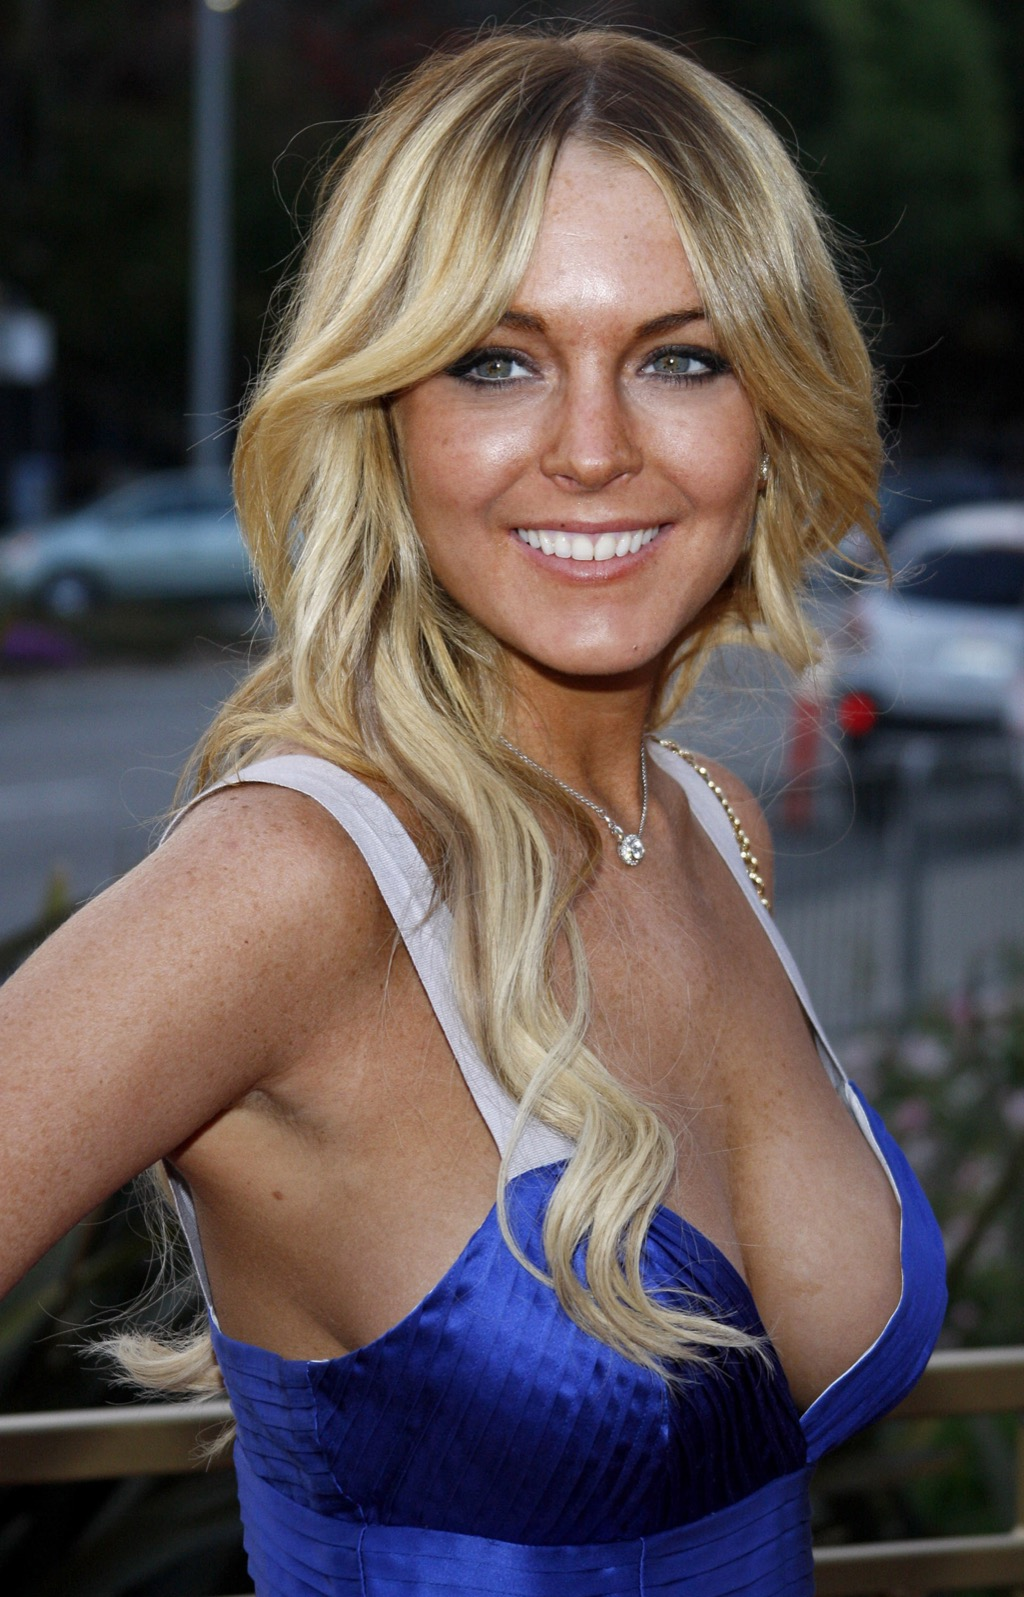 celebrities hooking up with normal people lindsay lohan